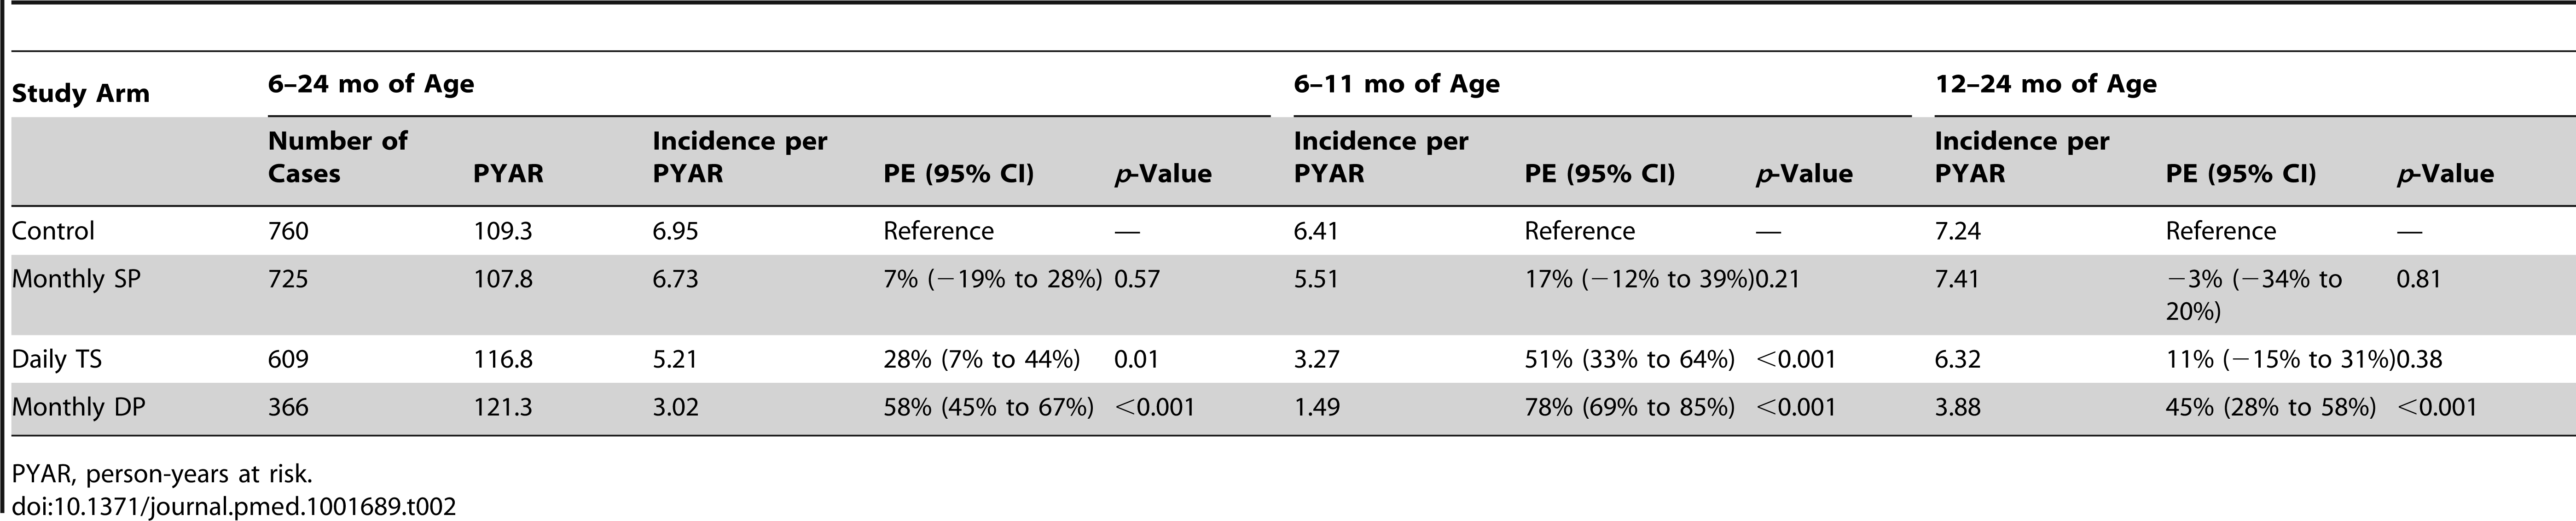 Protective efficacy against incident episodes of malaria overall and stratified by age.